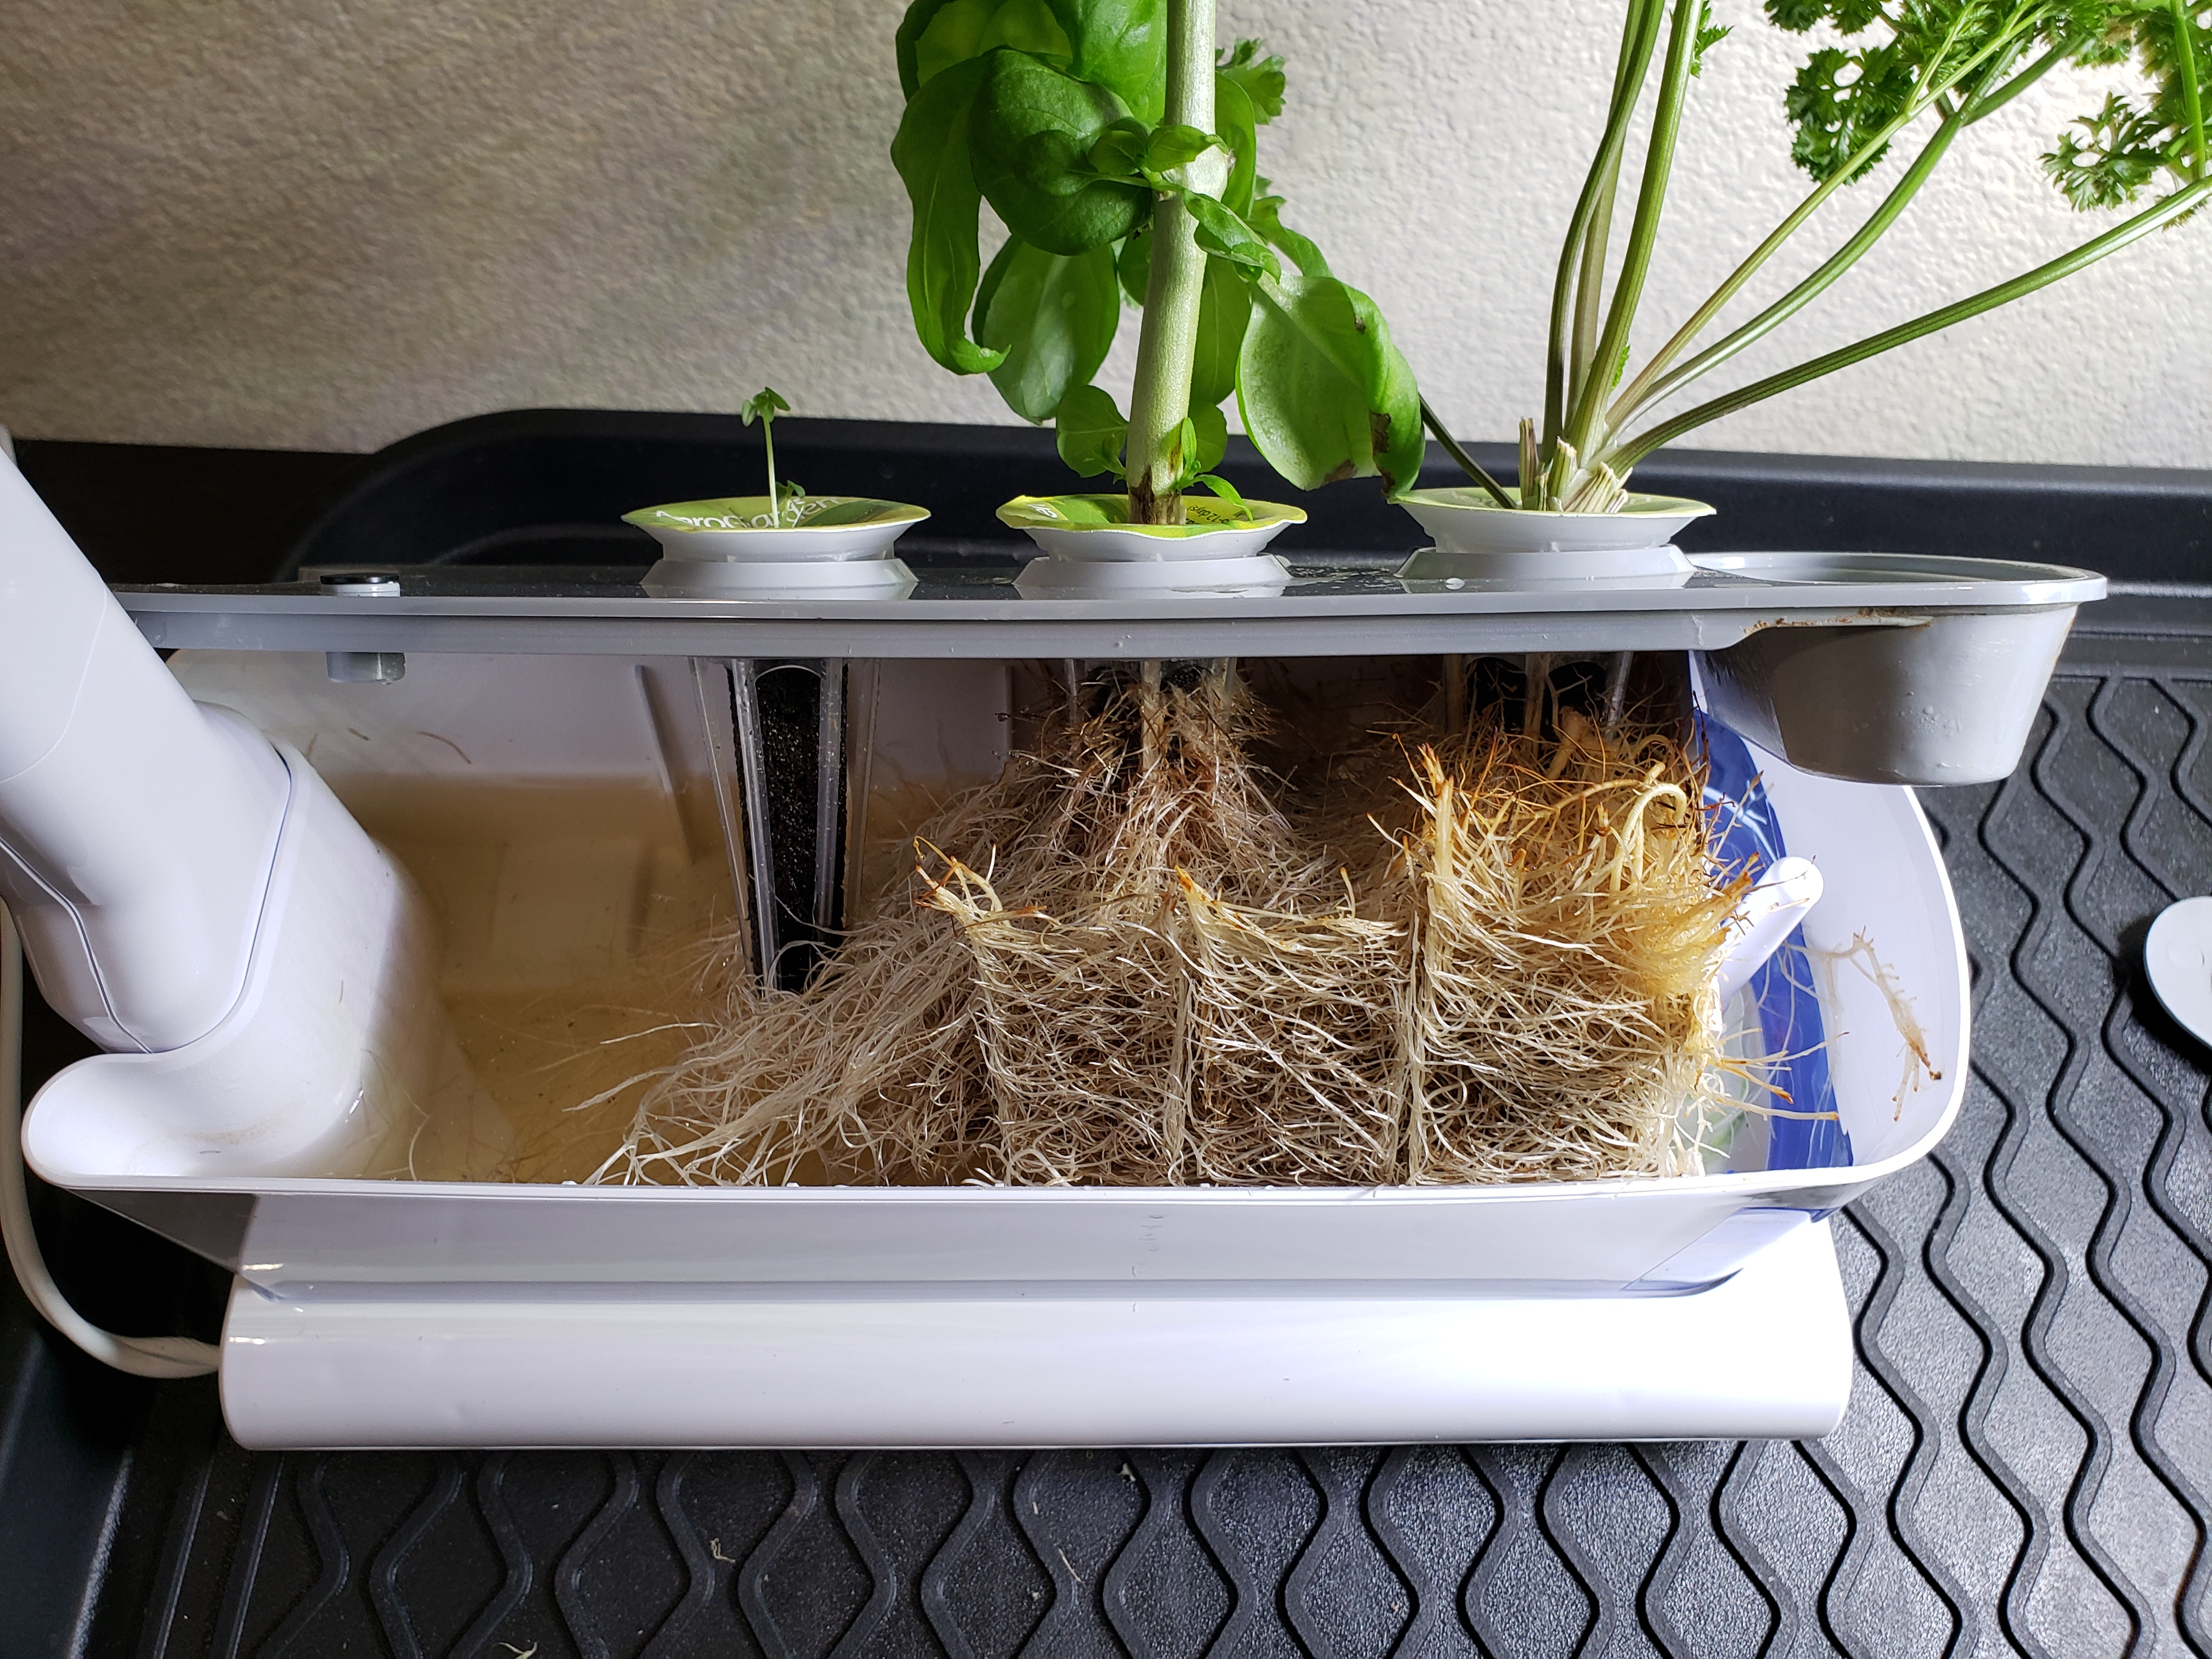 My Aerogarden System Cleaning and Root Trimming – My Small Space Gardening